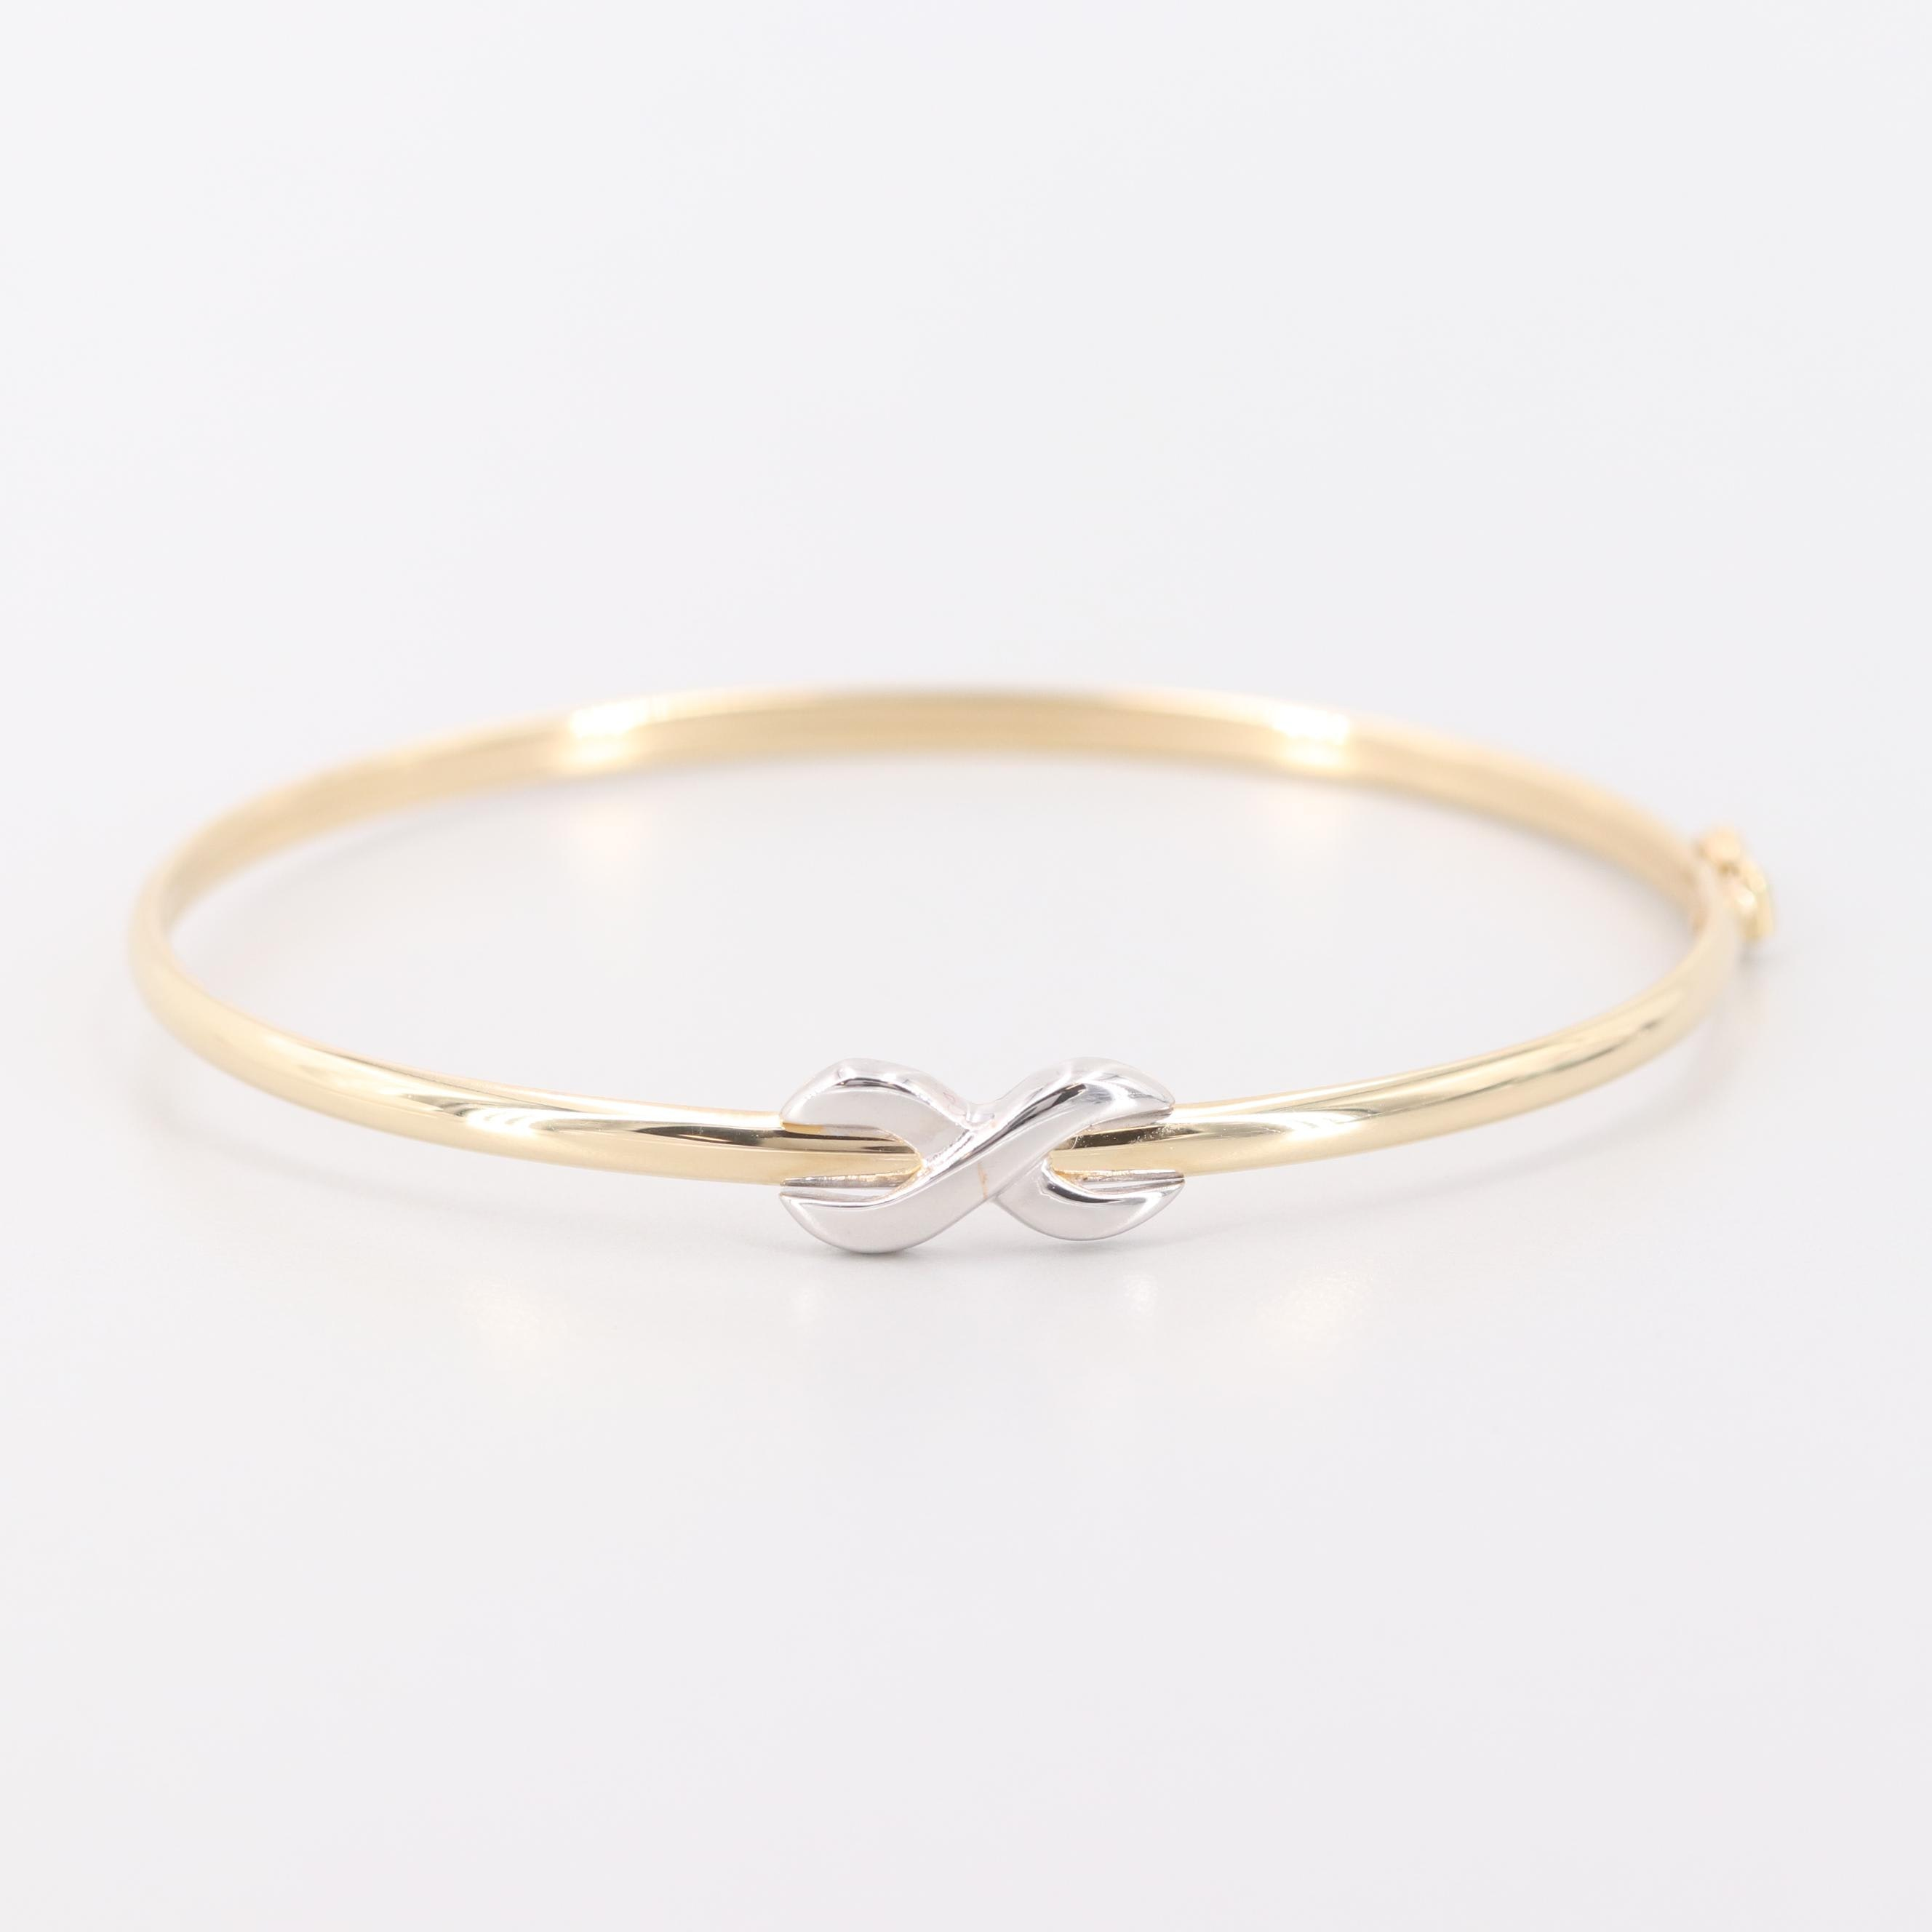 14K Yellow Gold Bangle Bracelet with White Gold Accent